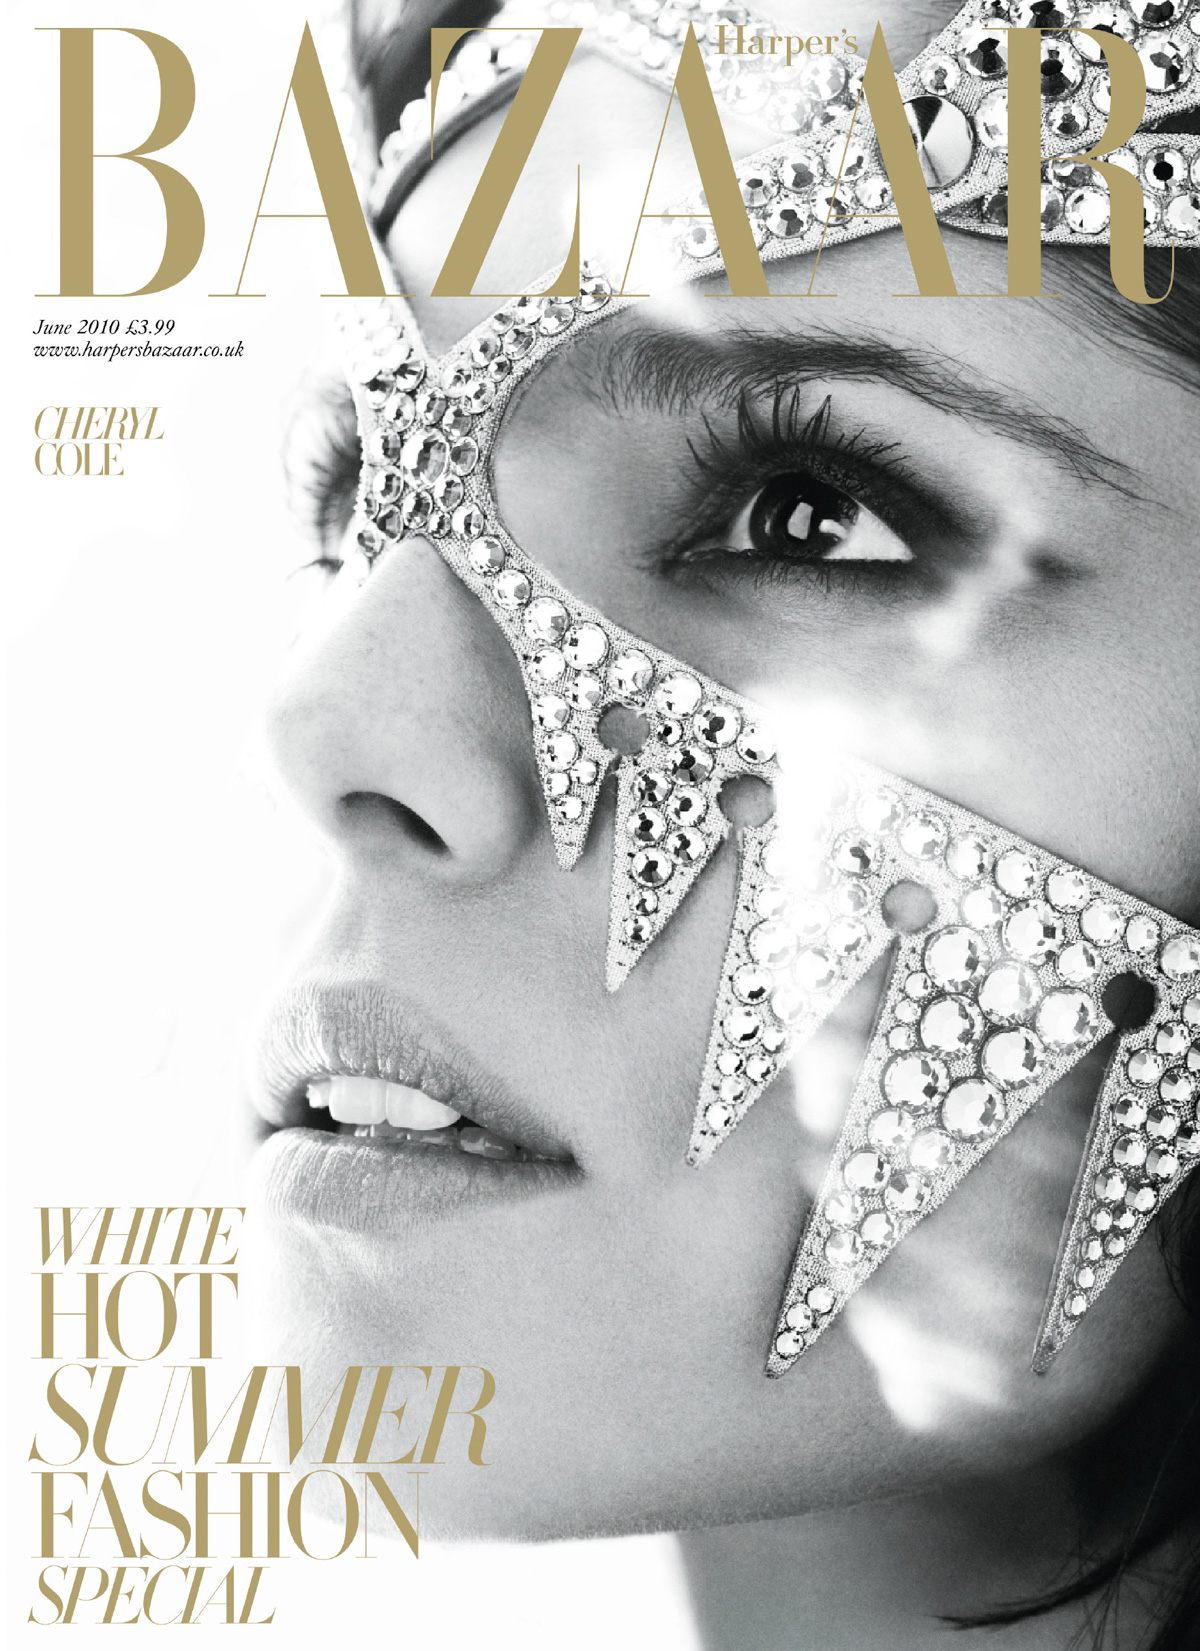 house-of-usher-harpers-bazaar-magazine-07